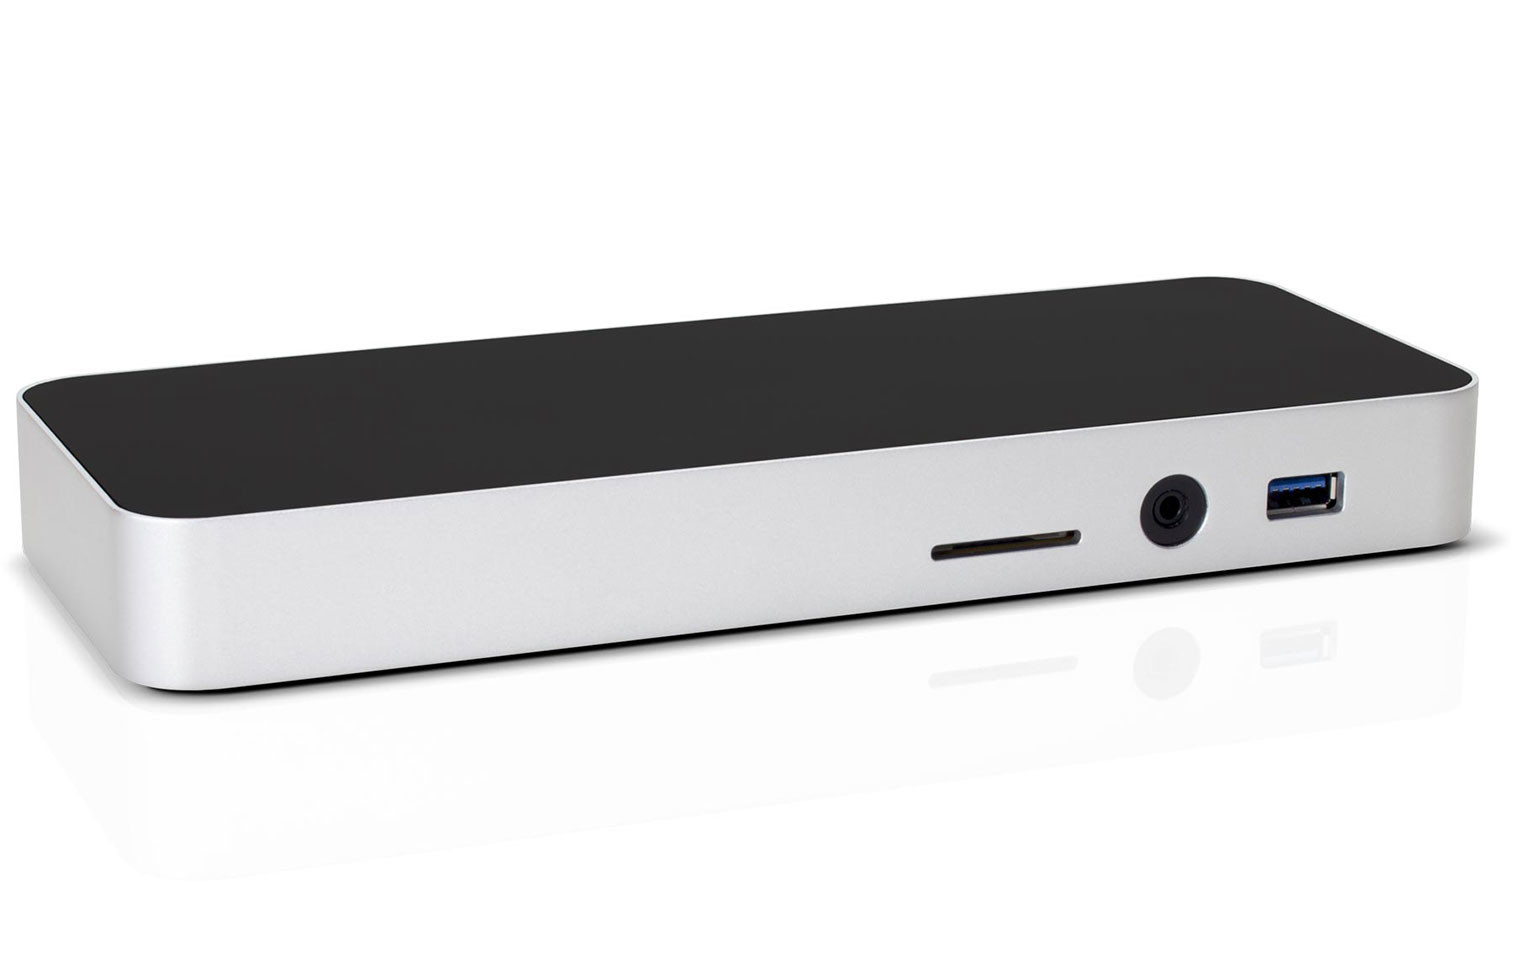 OWC Announces the 13-port Thunderbolt 3 Dock for New MacBook Pro ...